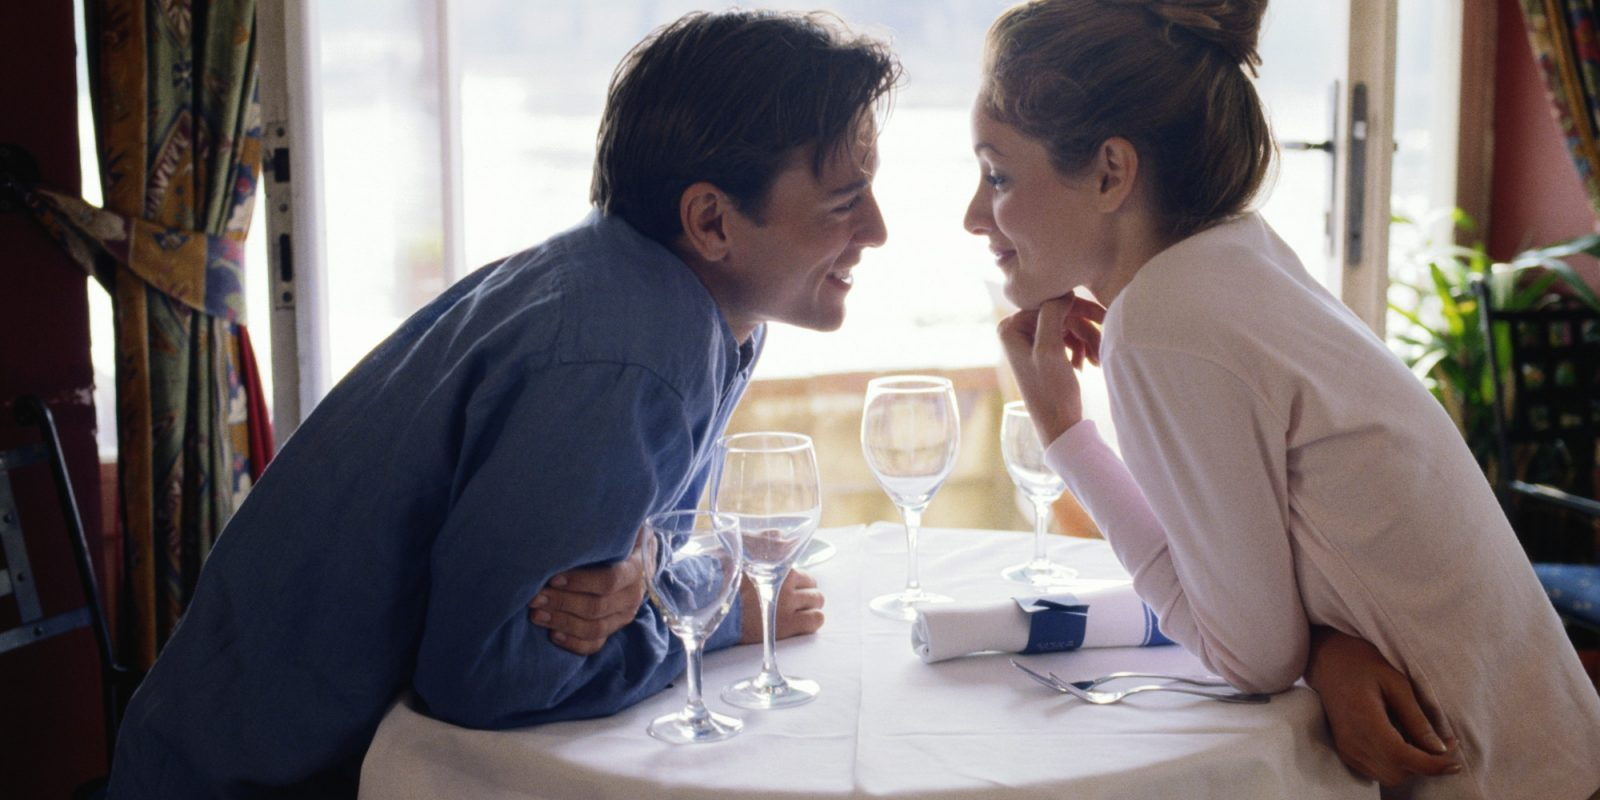 5 Amazingly Simple Ways to Step Up Your Dating Game